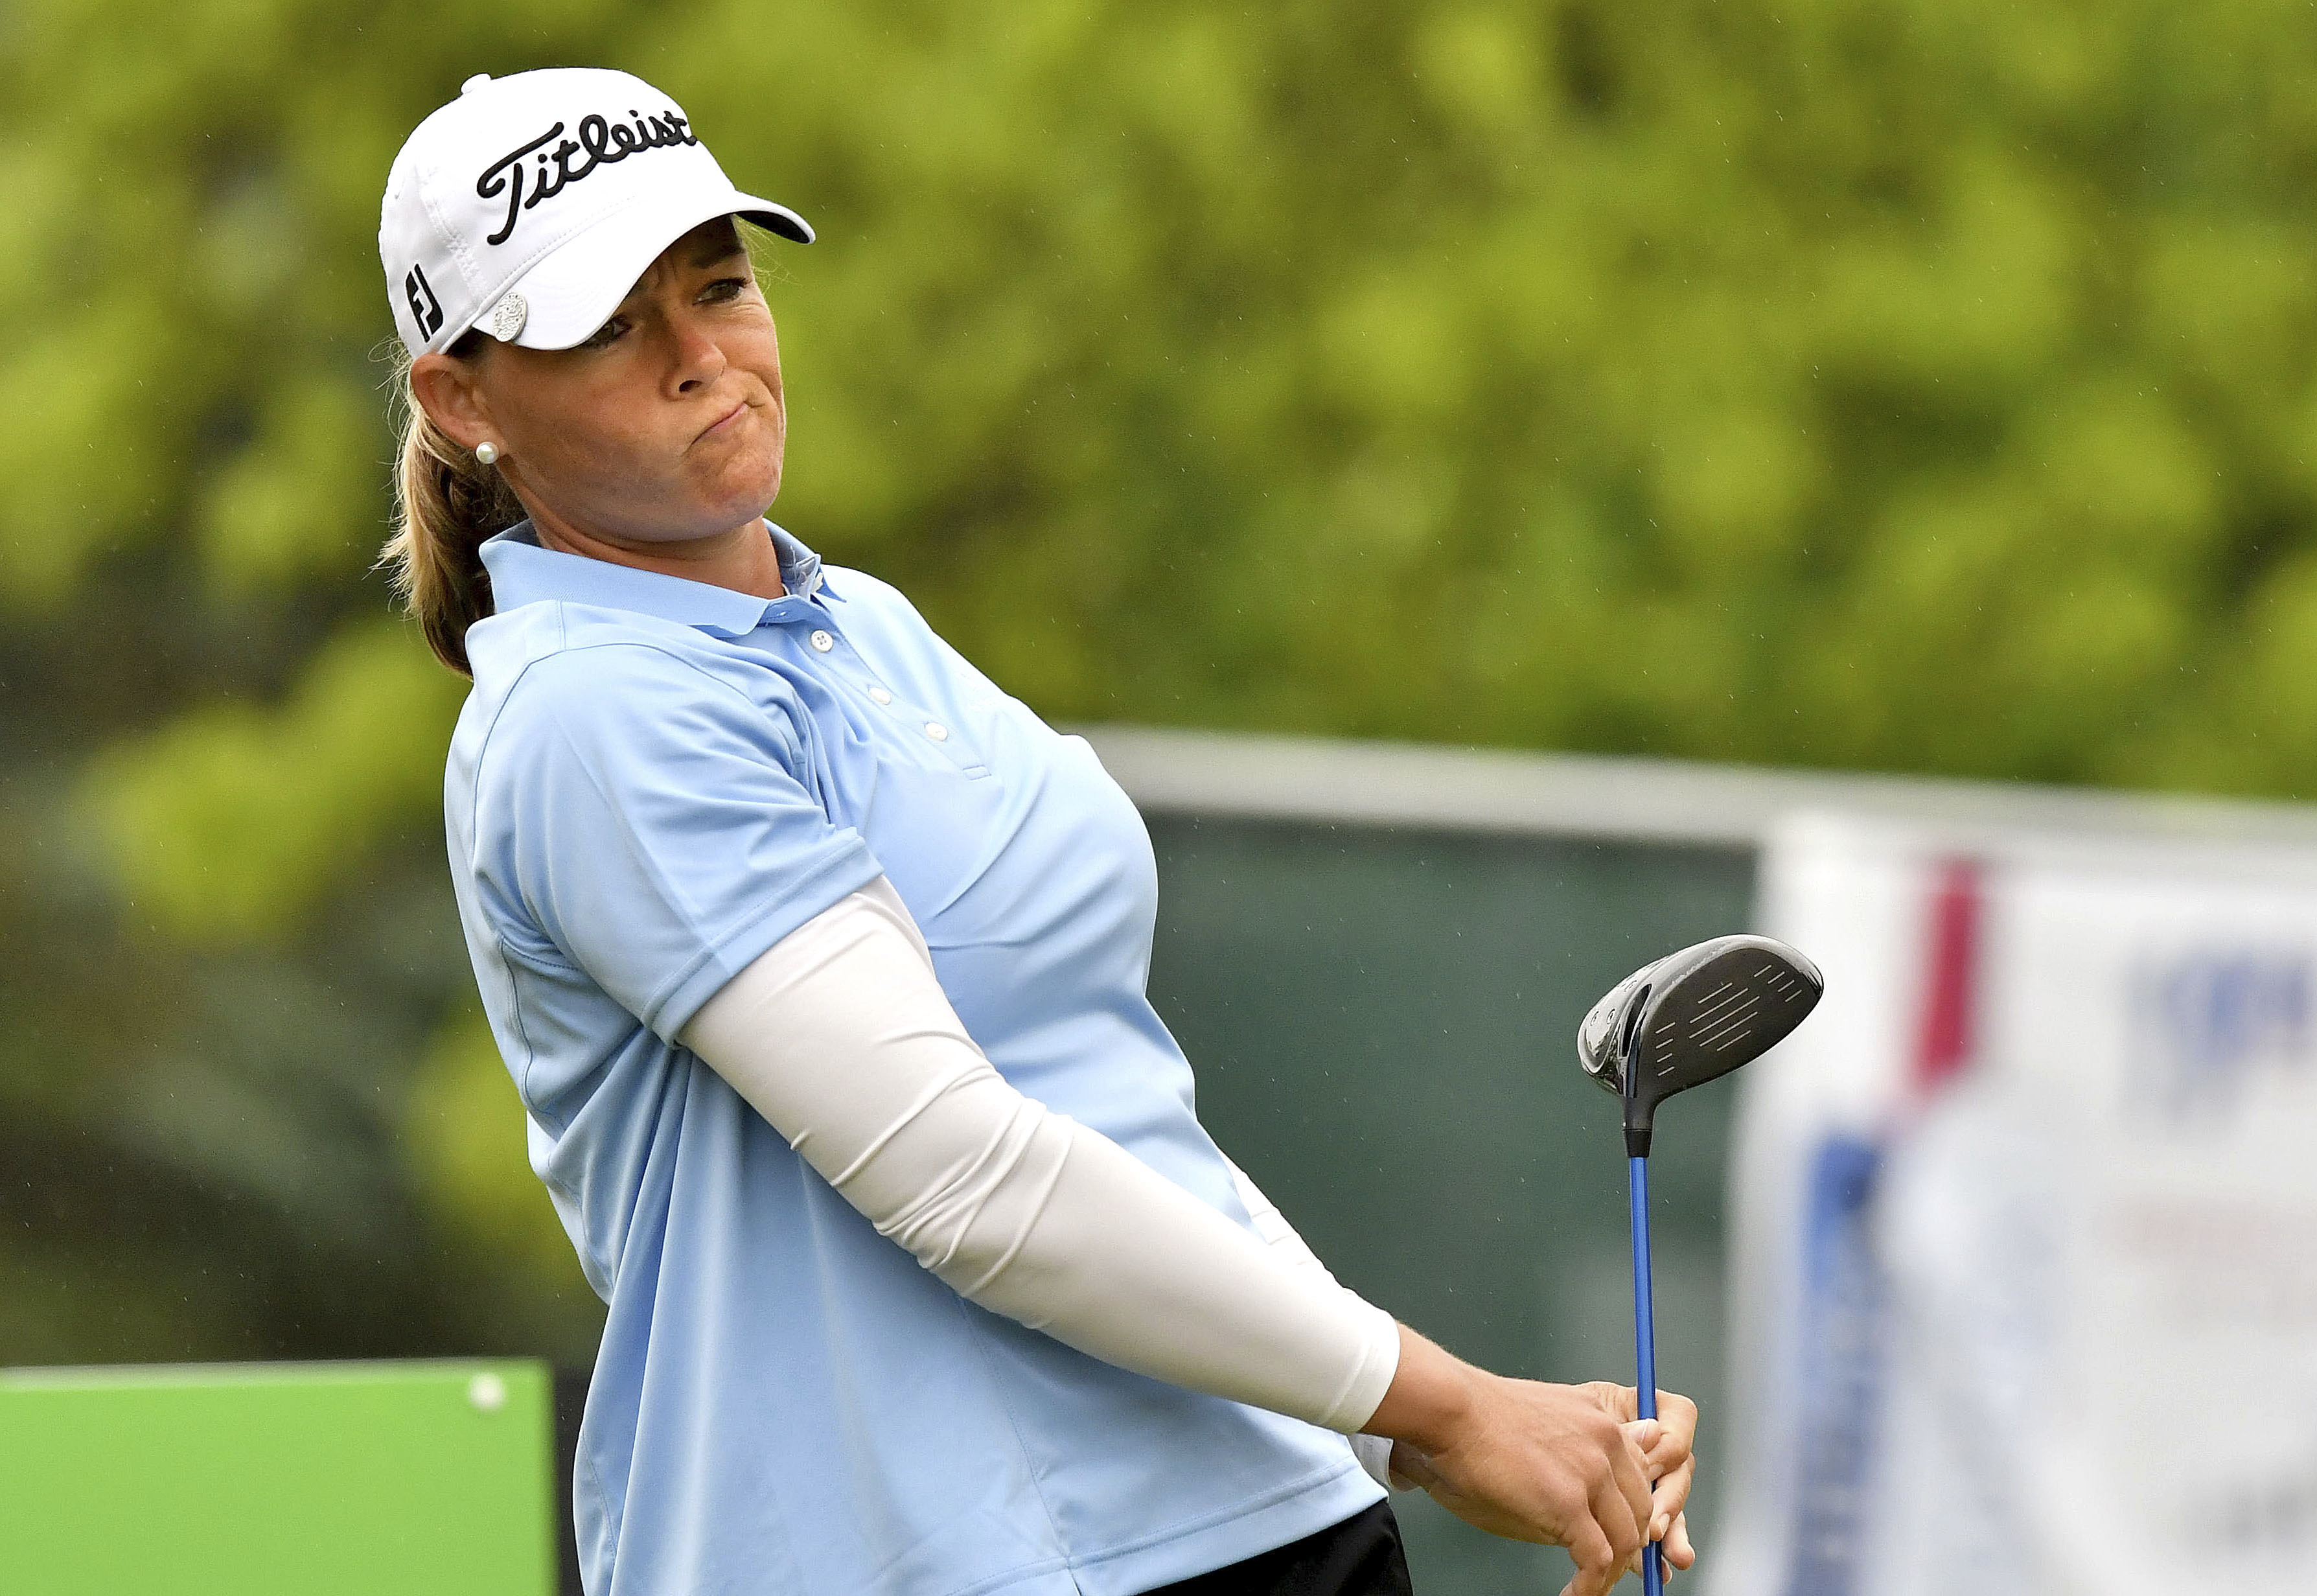 Katherine Kirk watches her shot on the first tee during the first day of the LPGA Volvik Championship, Thursday, May 25, 2016 in Ann Arbor, Mich. (Dale G Young/Detroit News via AP)